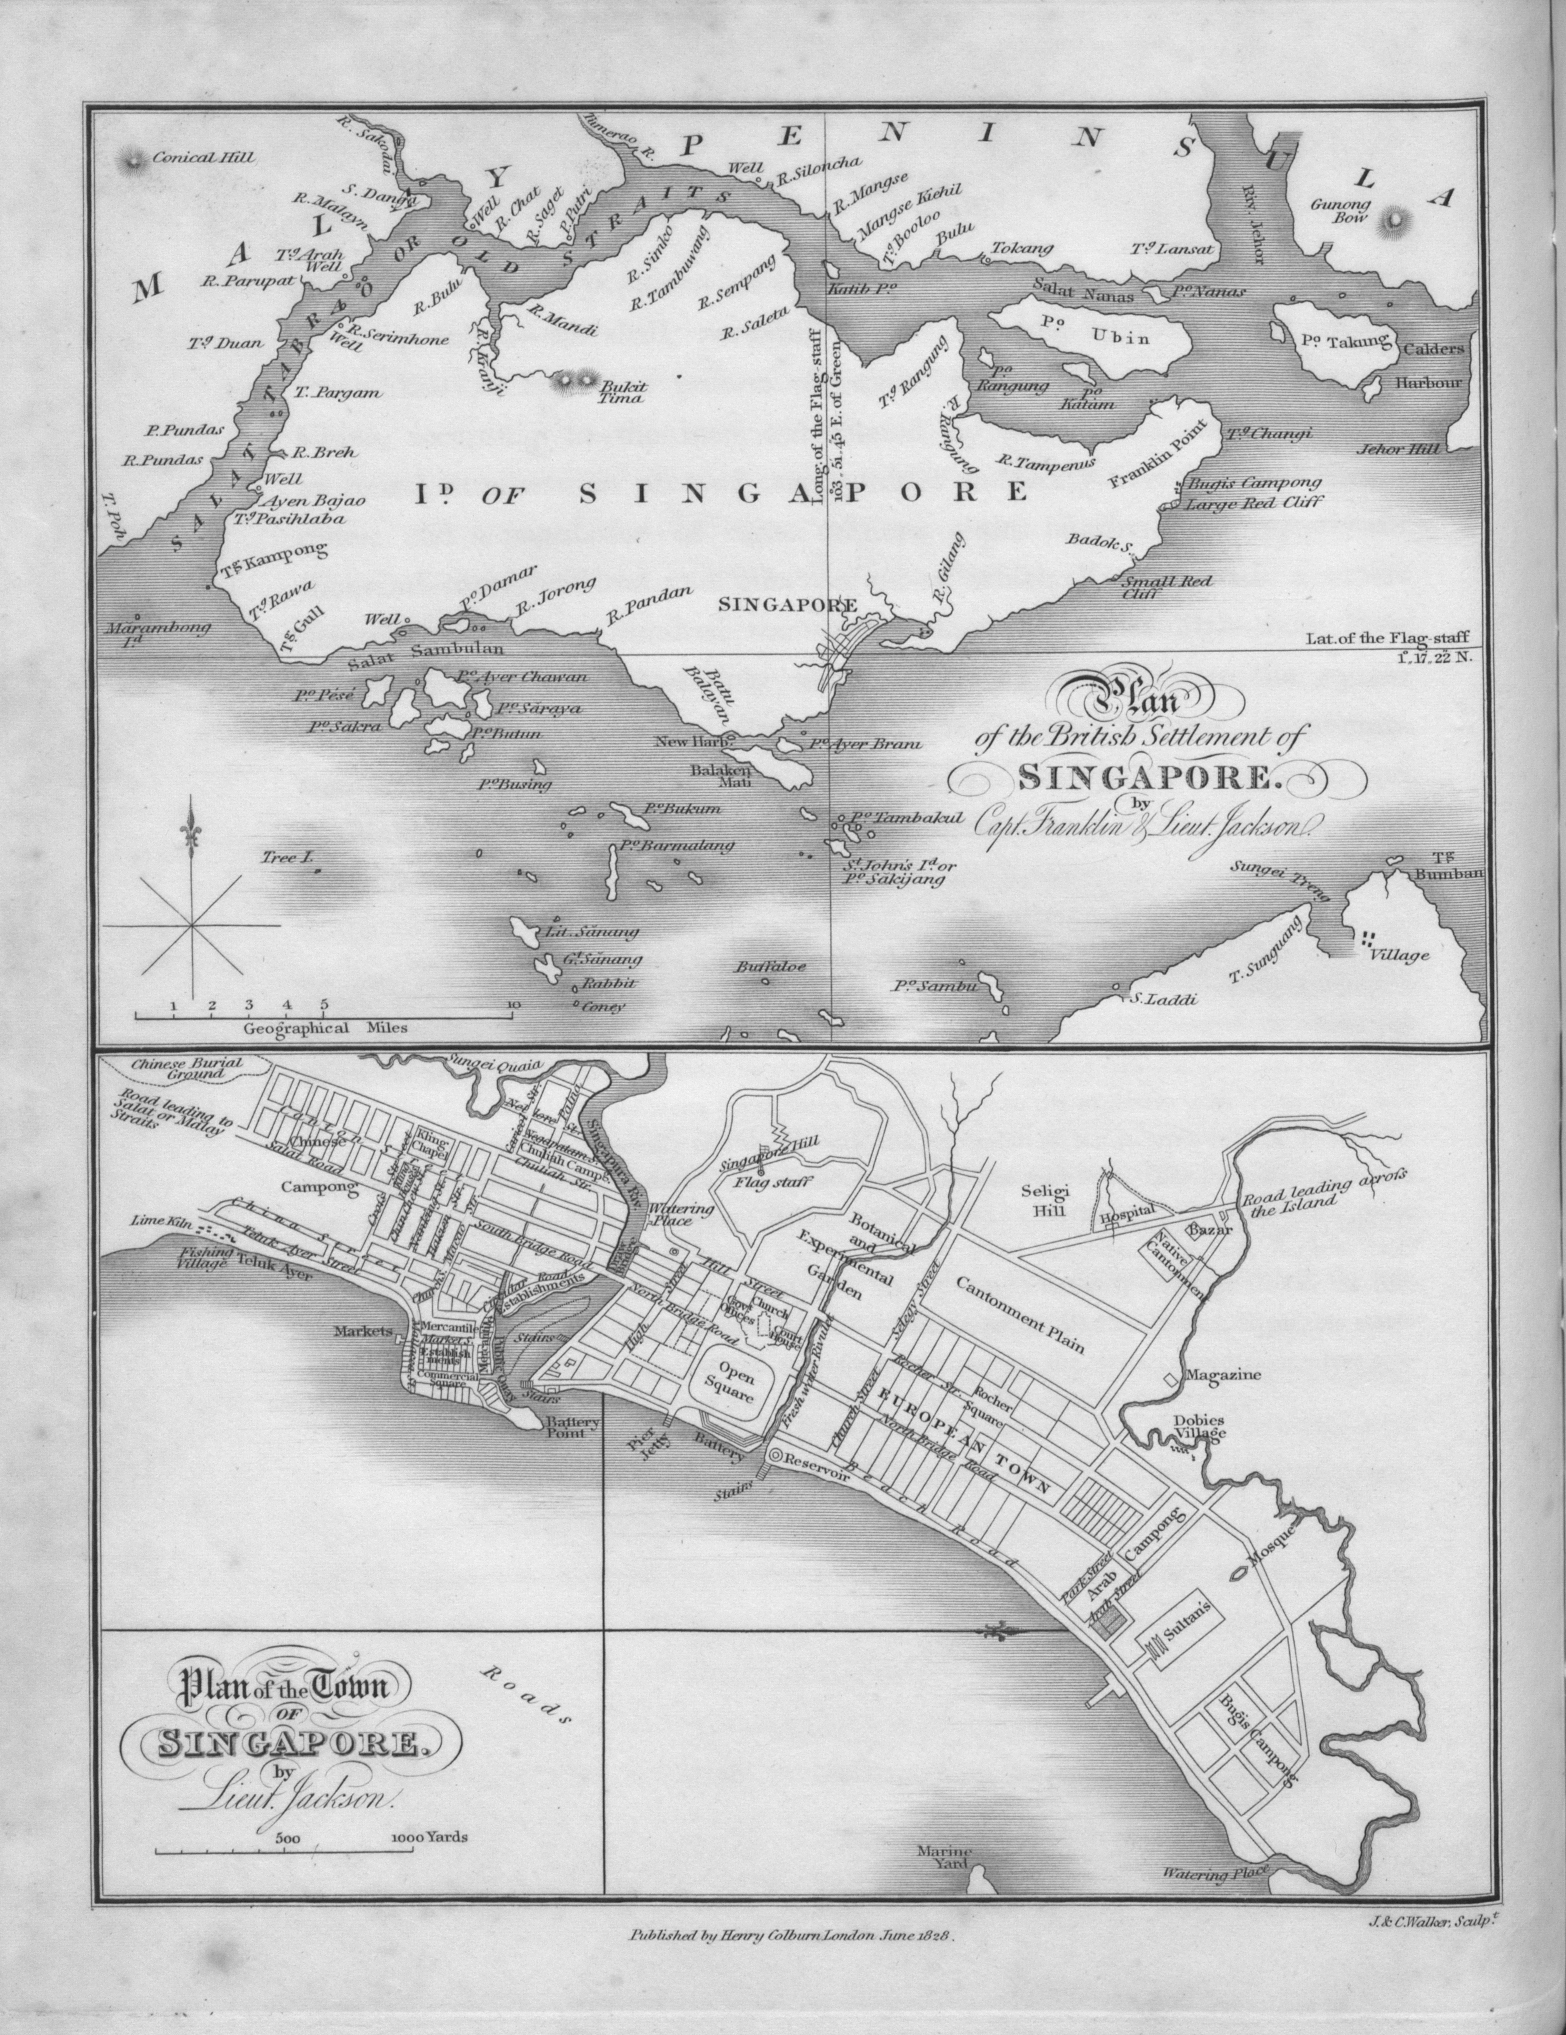 plan of the british settlement of singapore published 1828.jpg